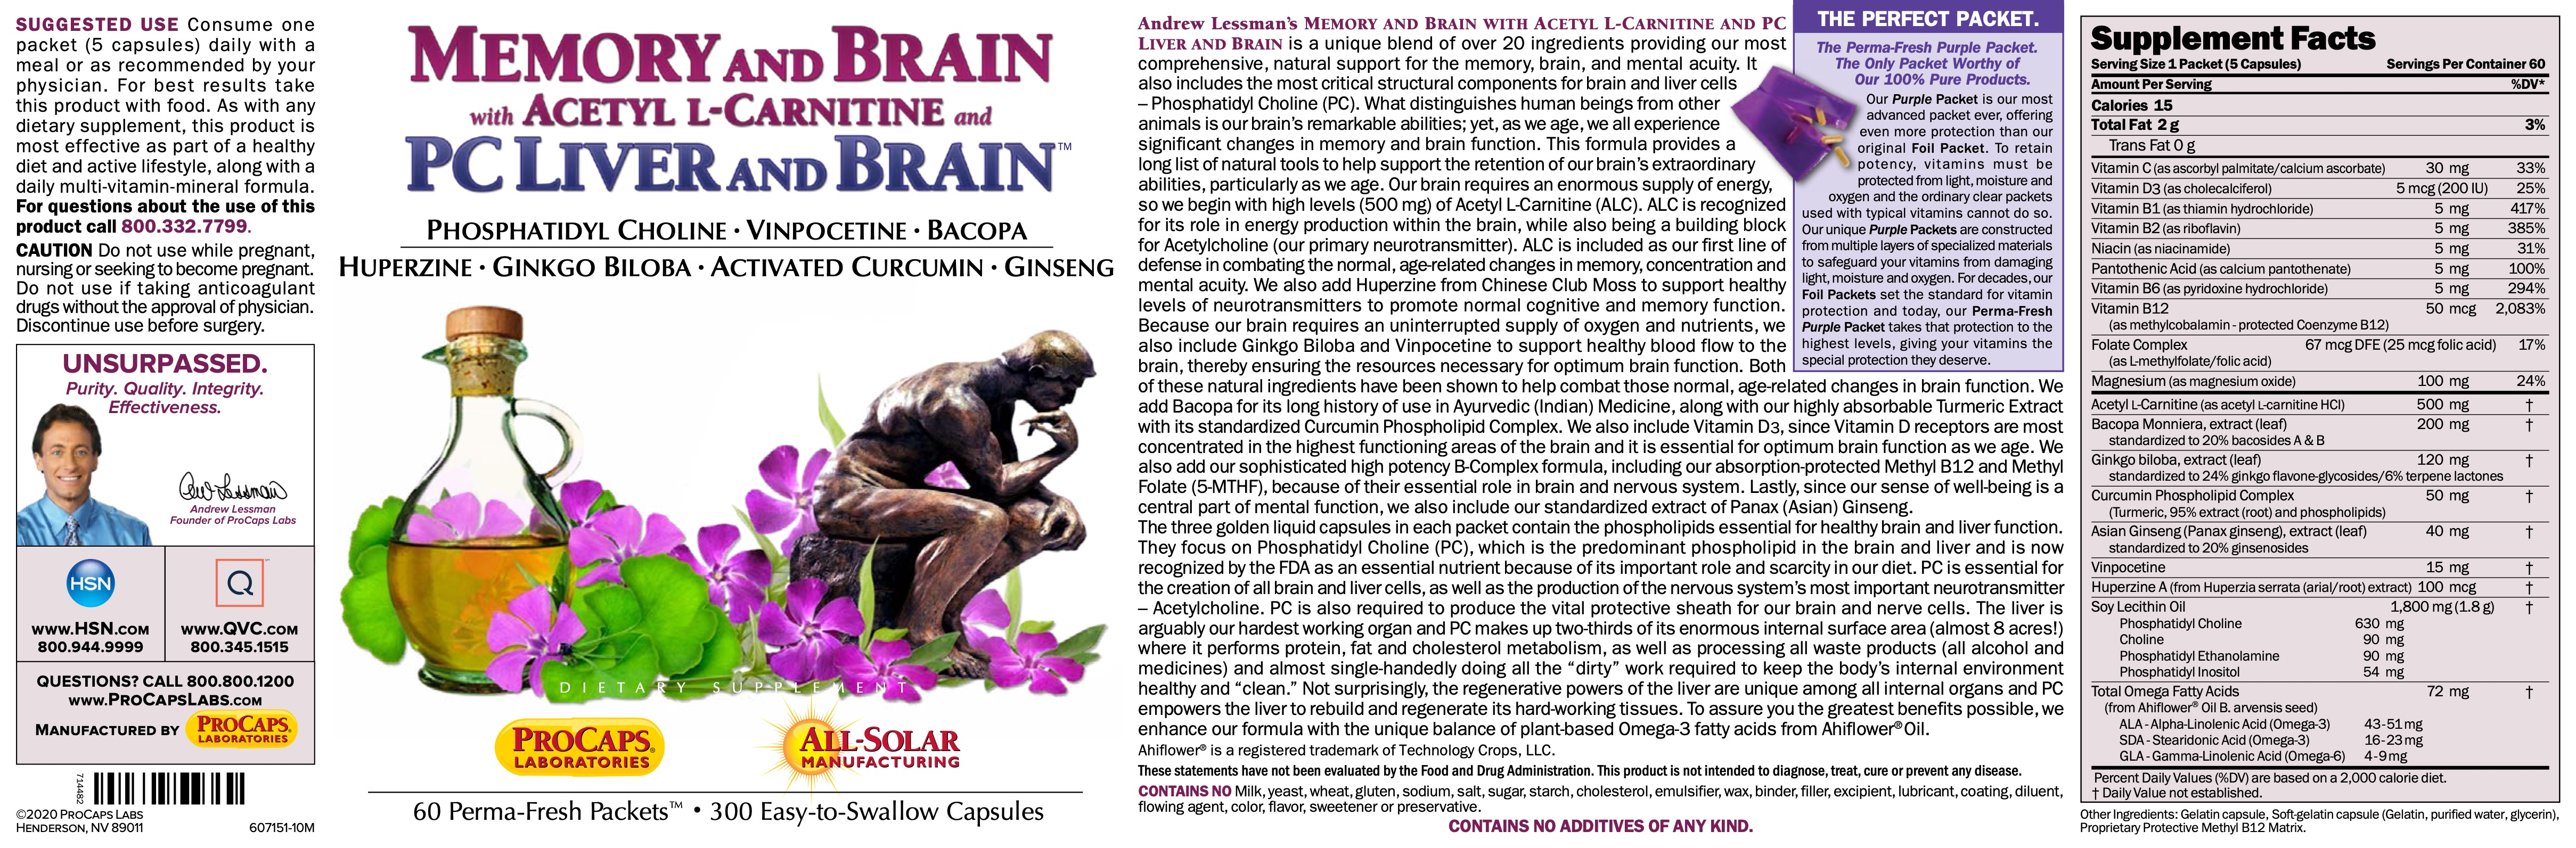 Memory-And-Brain-with-Acetyl-L-Carnitine-and-PC-Liver-and-Brain-Packets-Nervous-System-Support